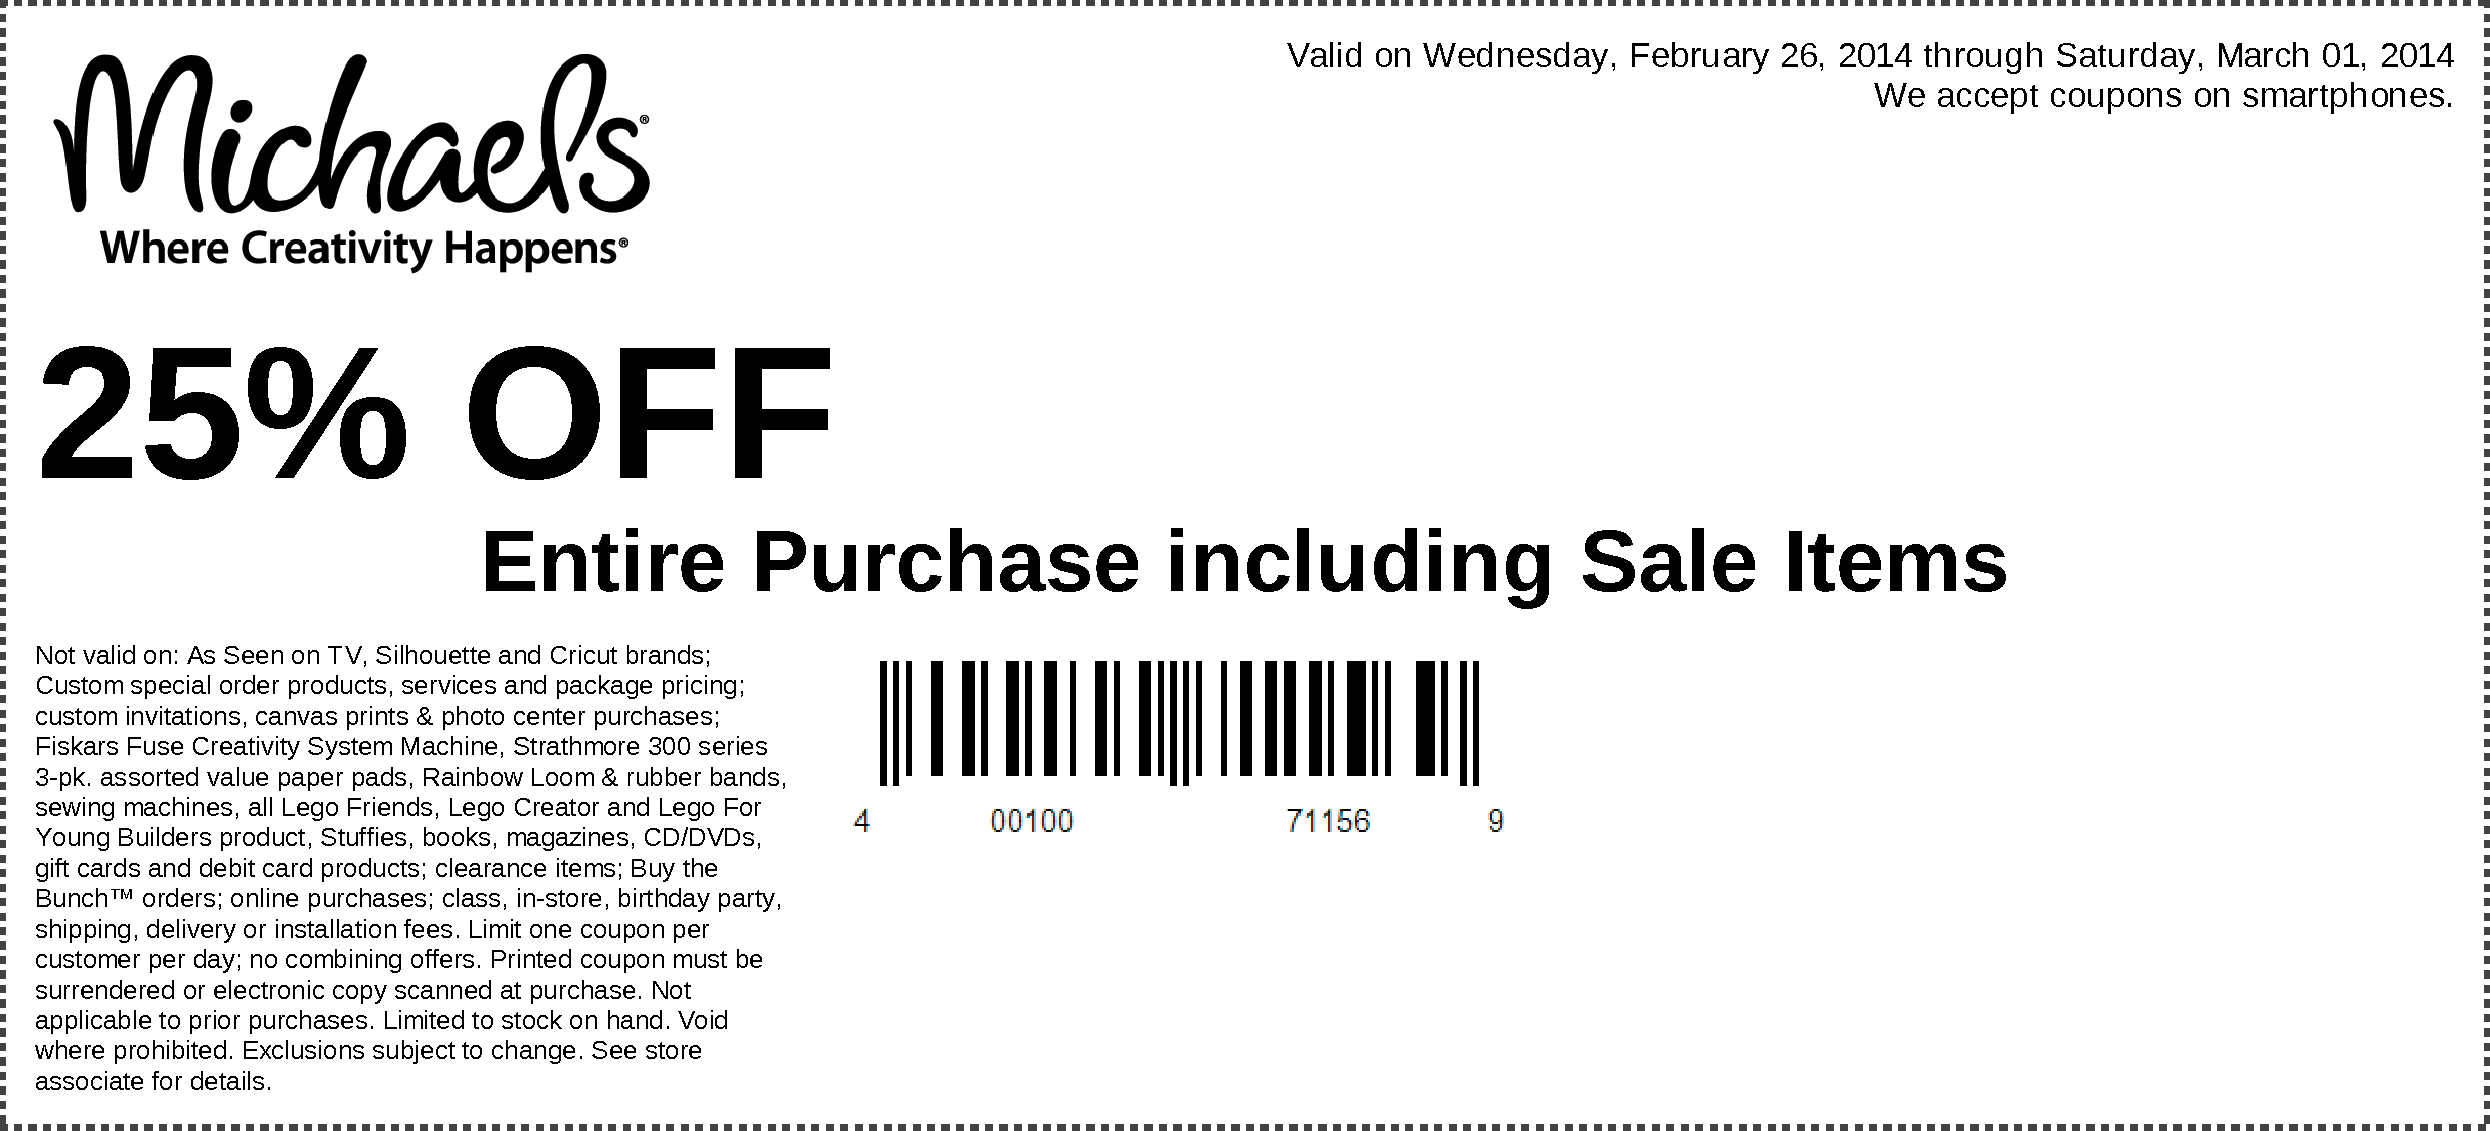 Entire Purchase Including Sale Items Printable Coupons Free Printable Coupons Promo Coupon